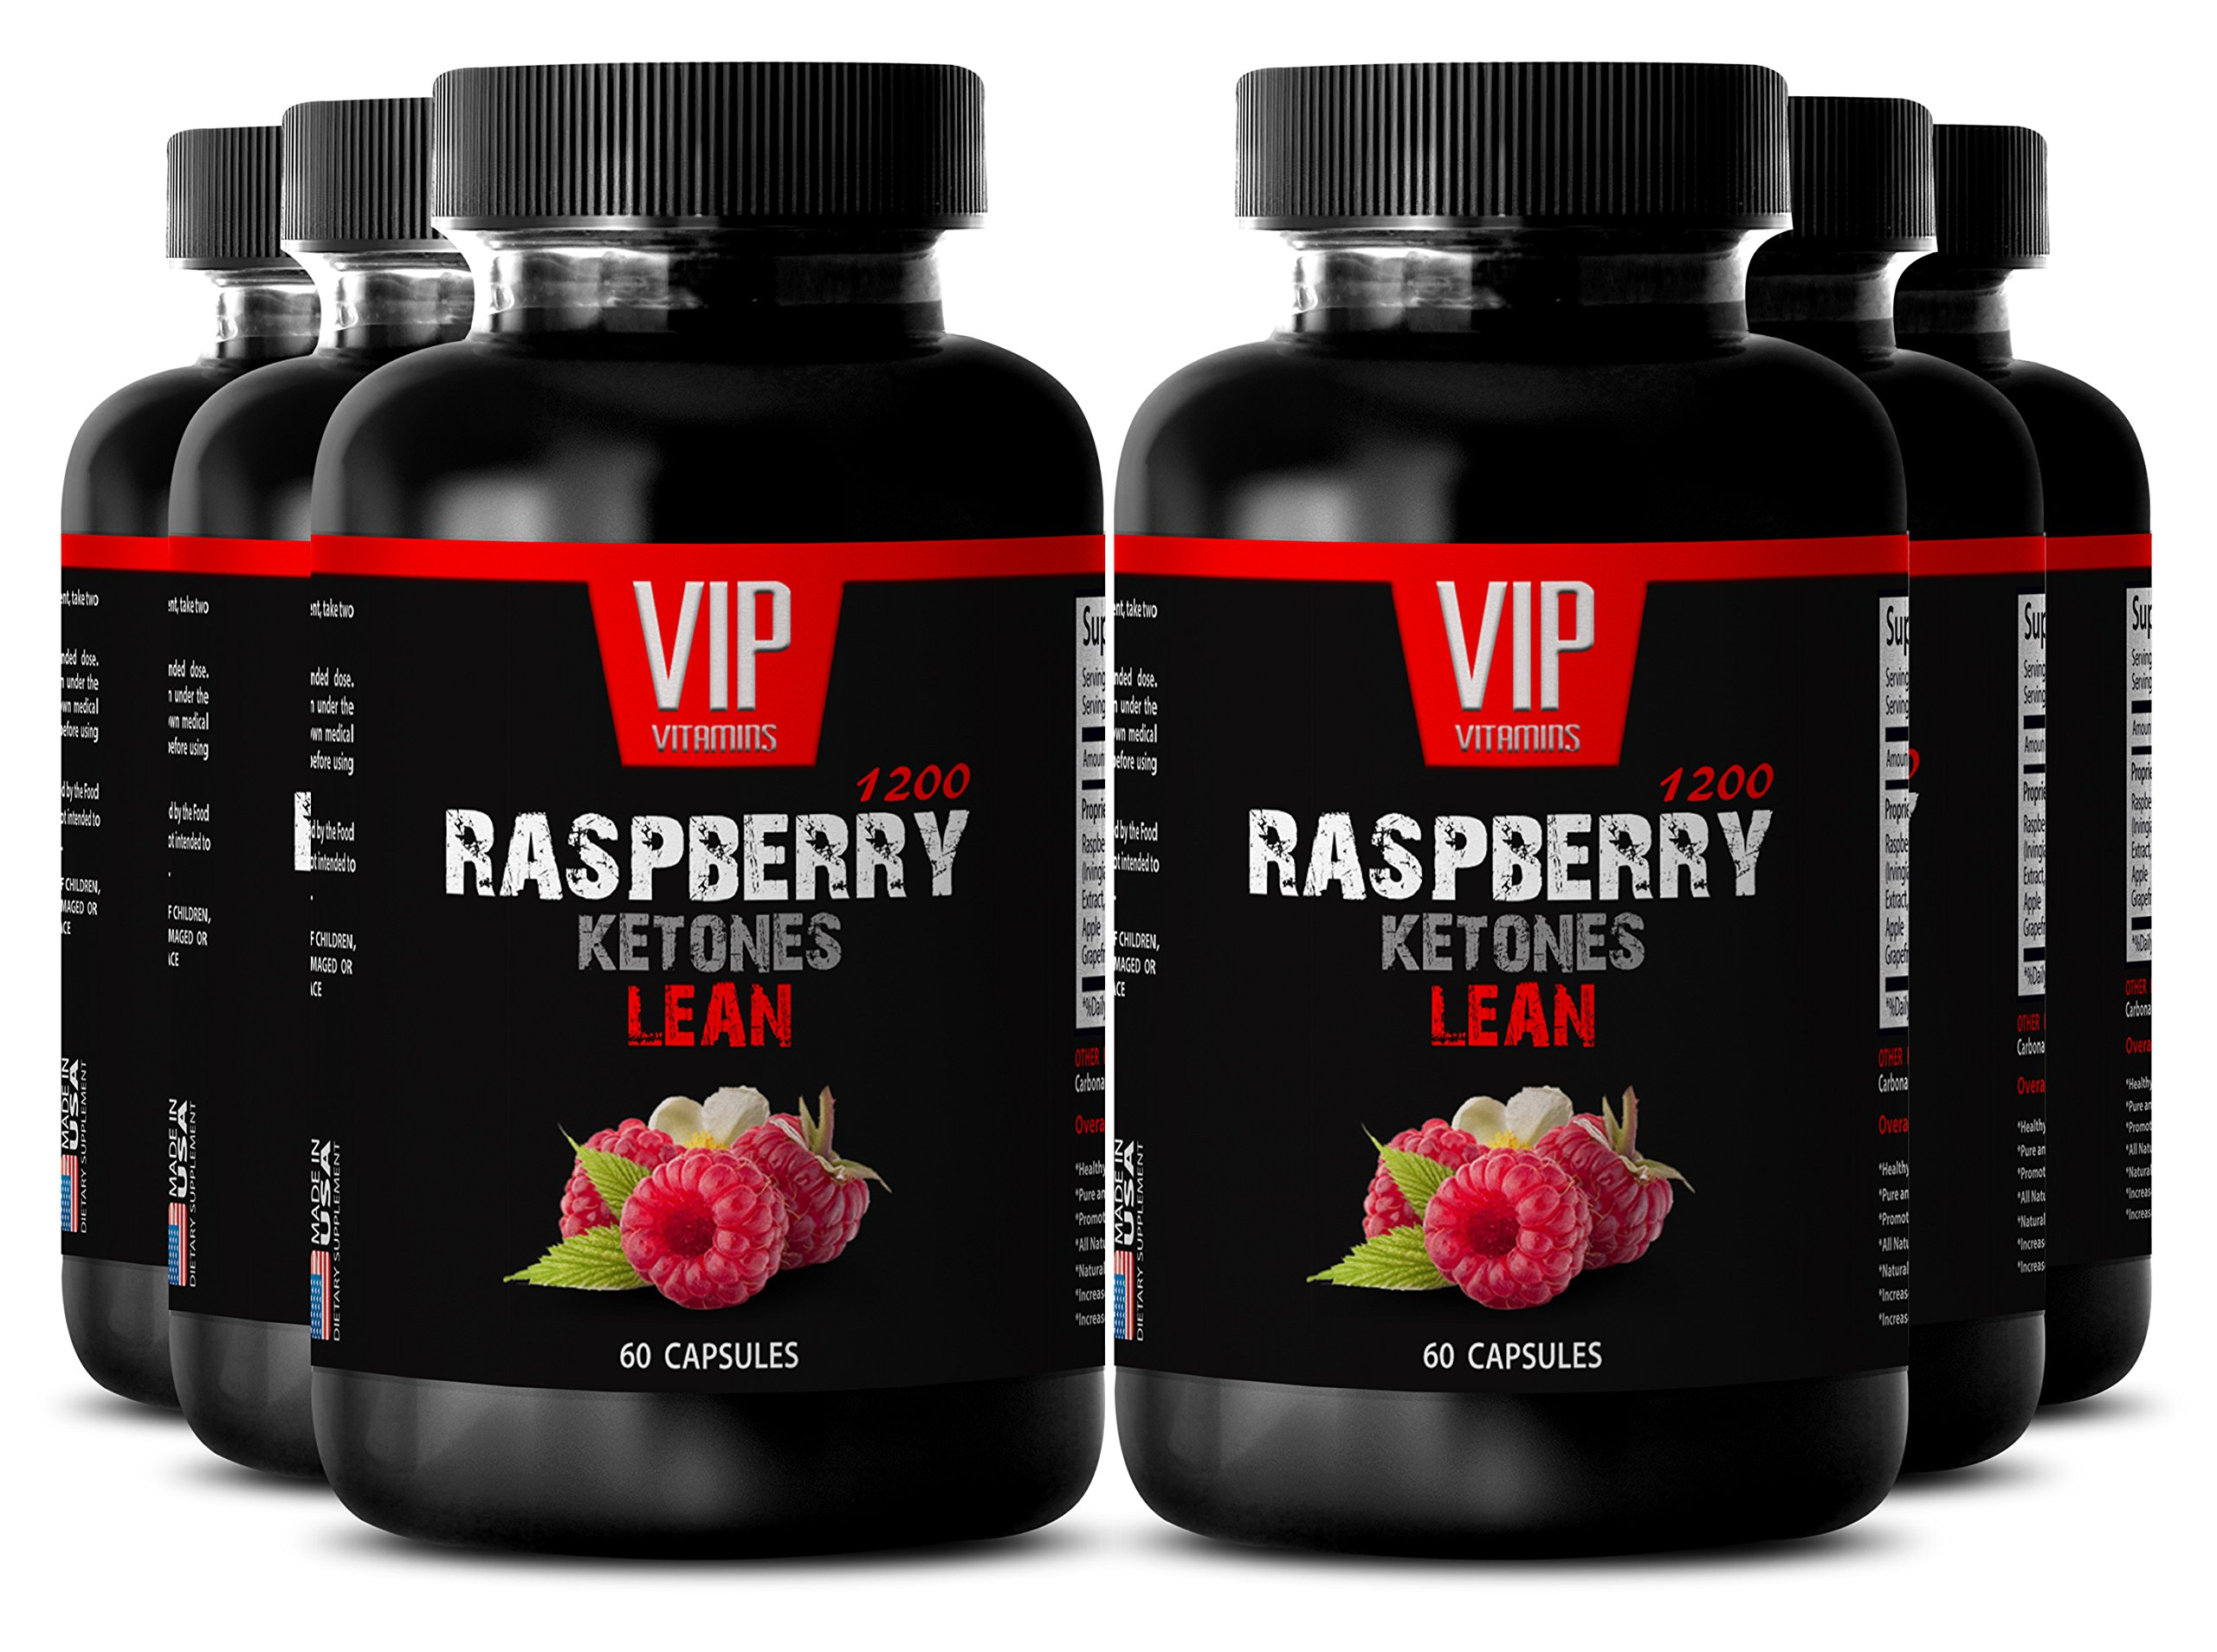 Liver health supplements - RASPBERRY KETONES LEAN 1200 EXTRACT - Liver support - 6 Bottles 360 Capsules